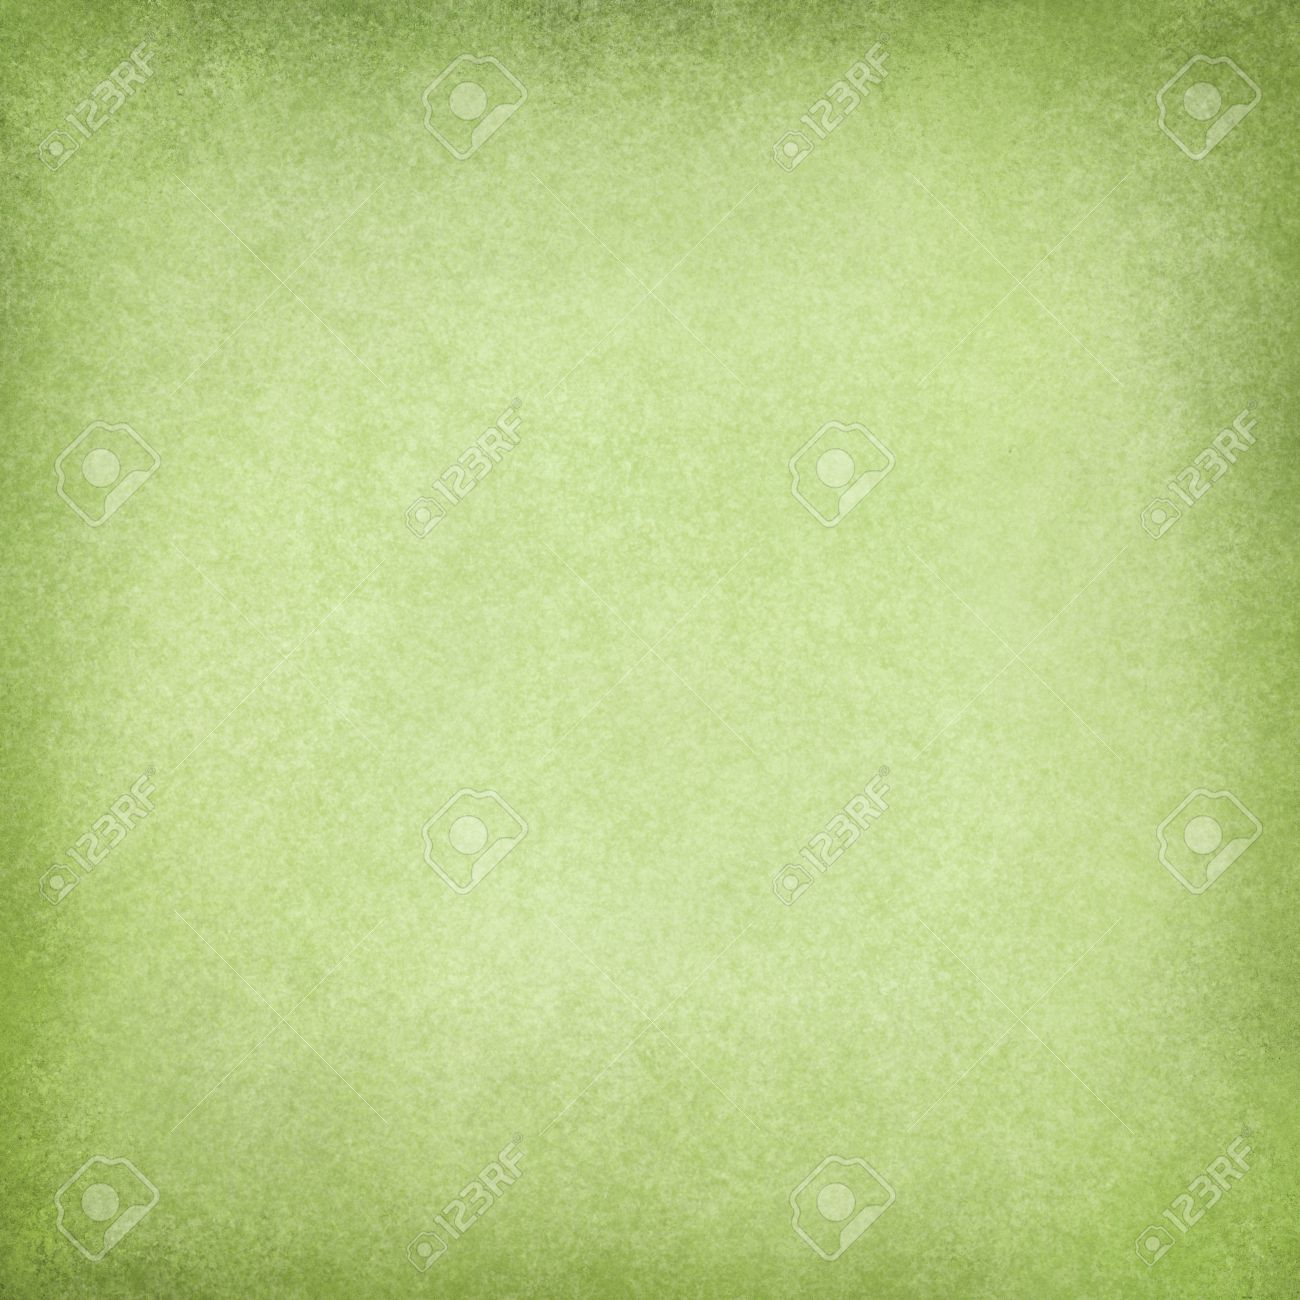 Soft Green Color Abstract Green Background Soft Christmas Color Image For Use